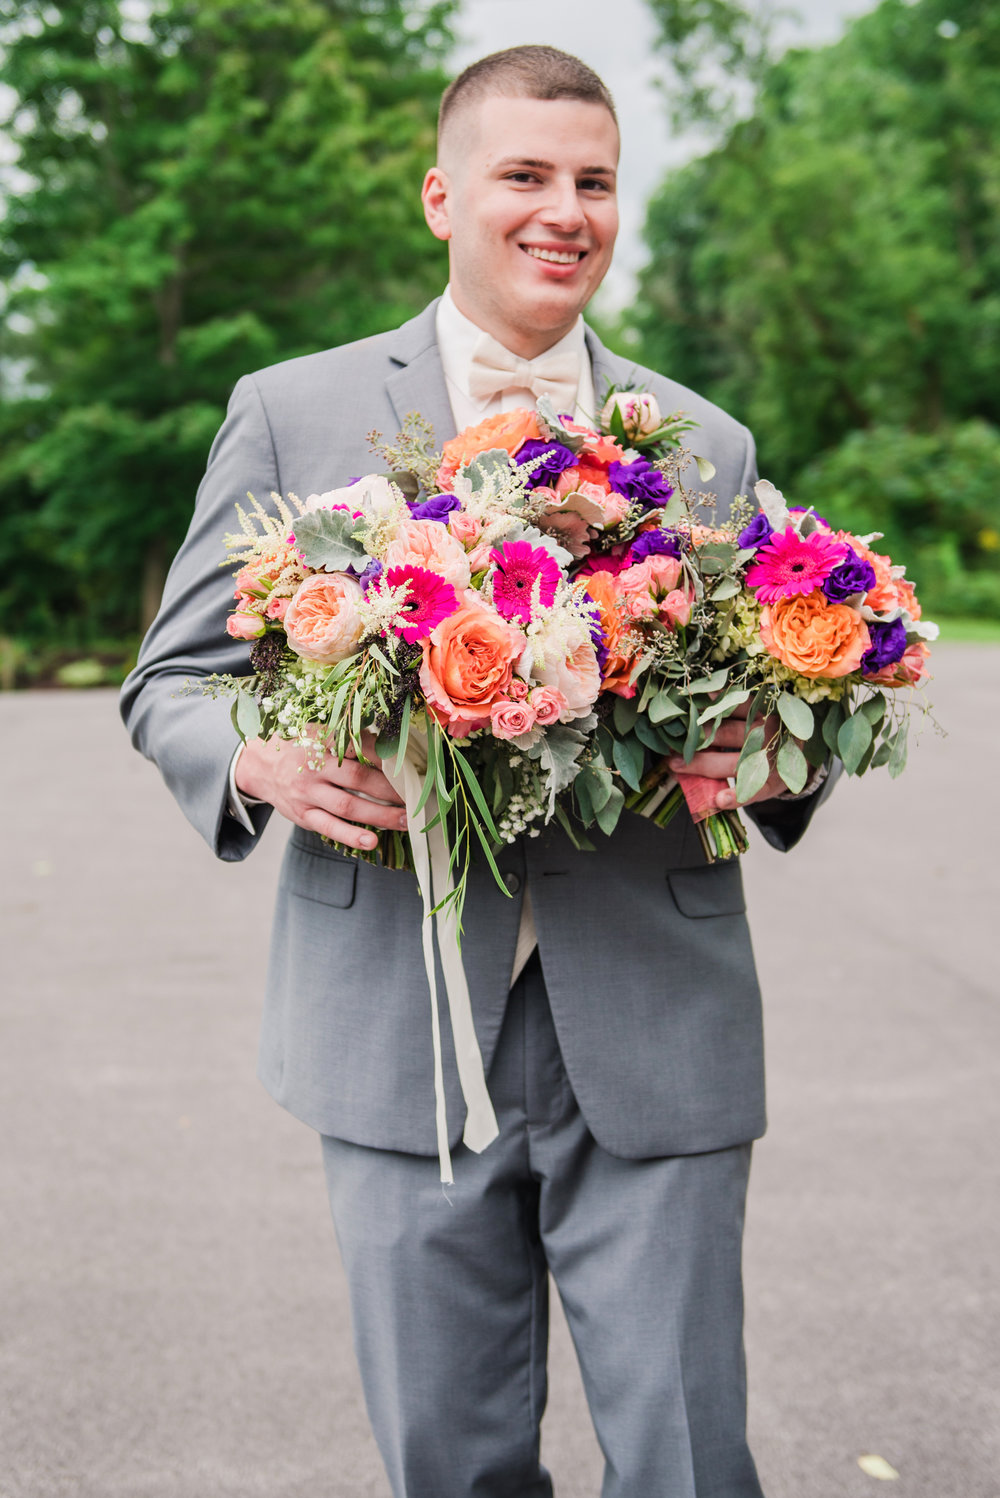 Wolf_Oak_Acres_Central_NY_Wedding_JILL_STUDIO_Rochester_NY_Photographer_DSC_8646.jpg